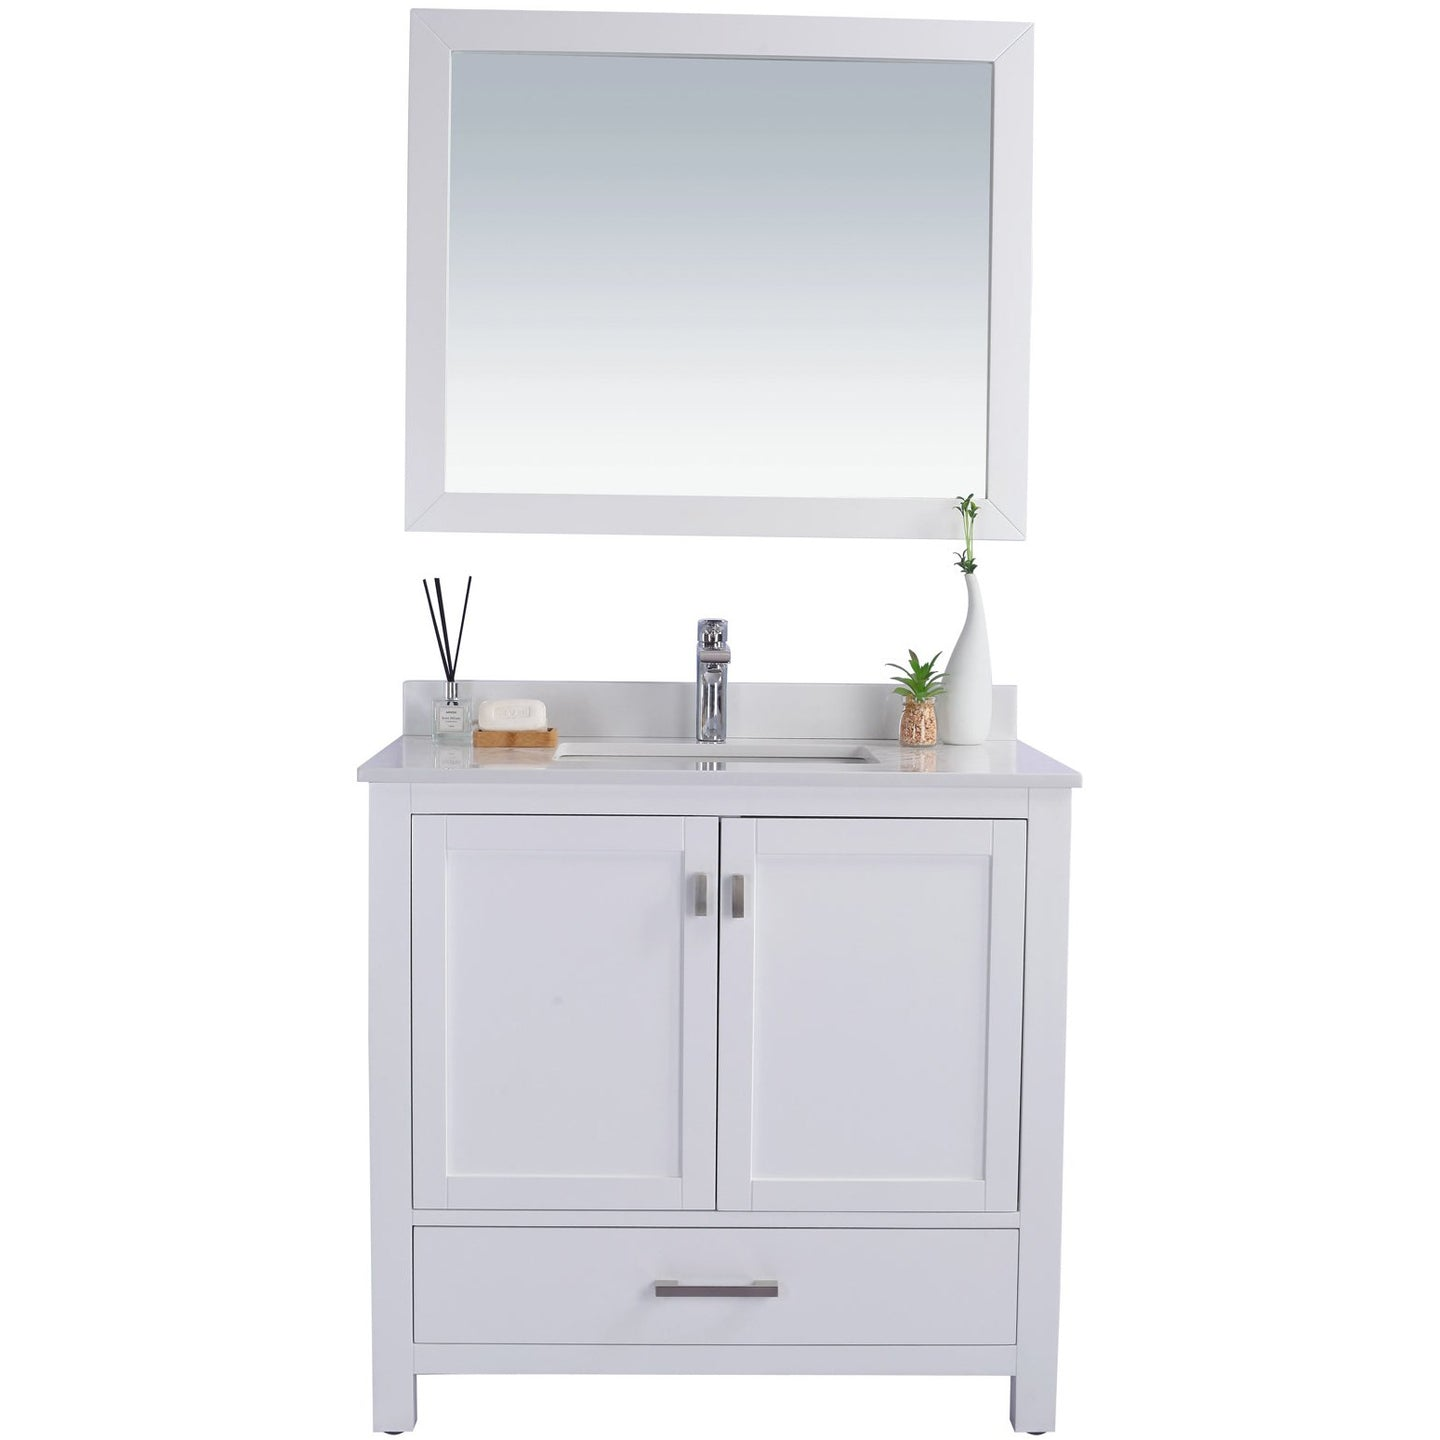 Wilson 36 - White Vanity and White Quartz Countertop by Laviva